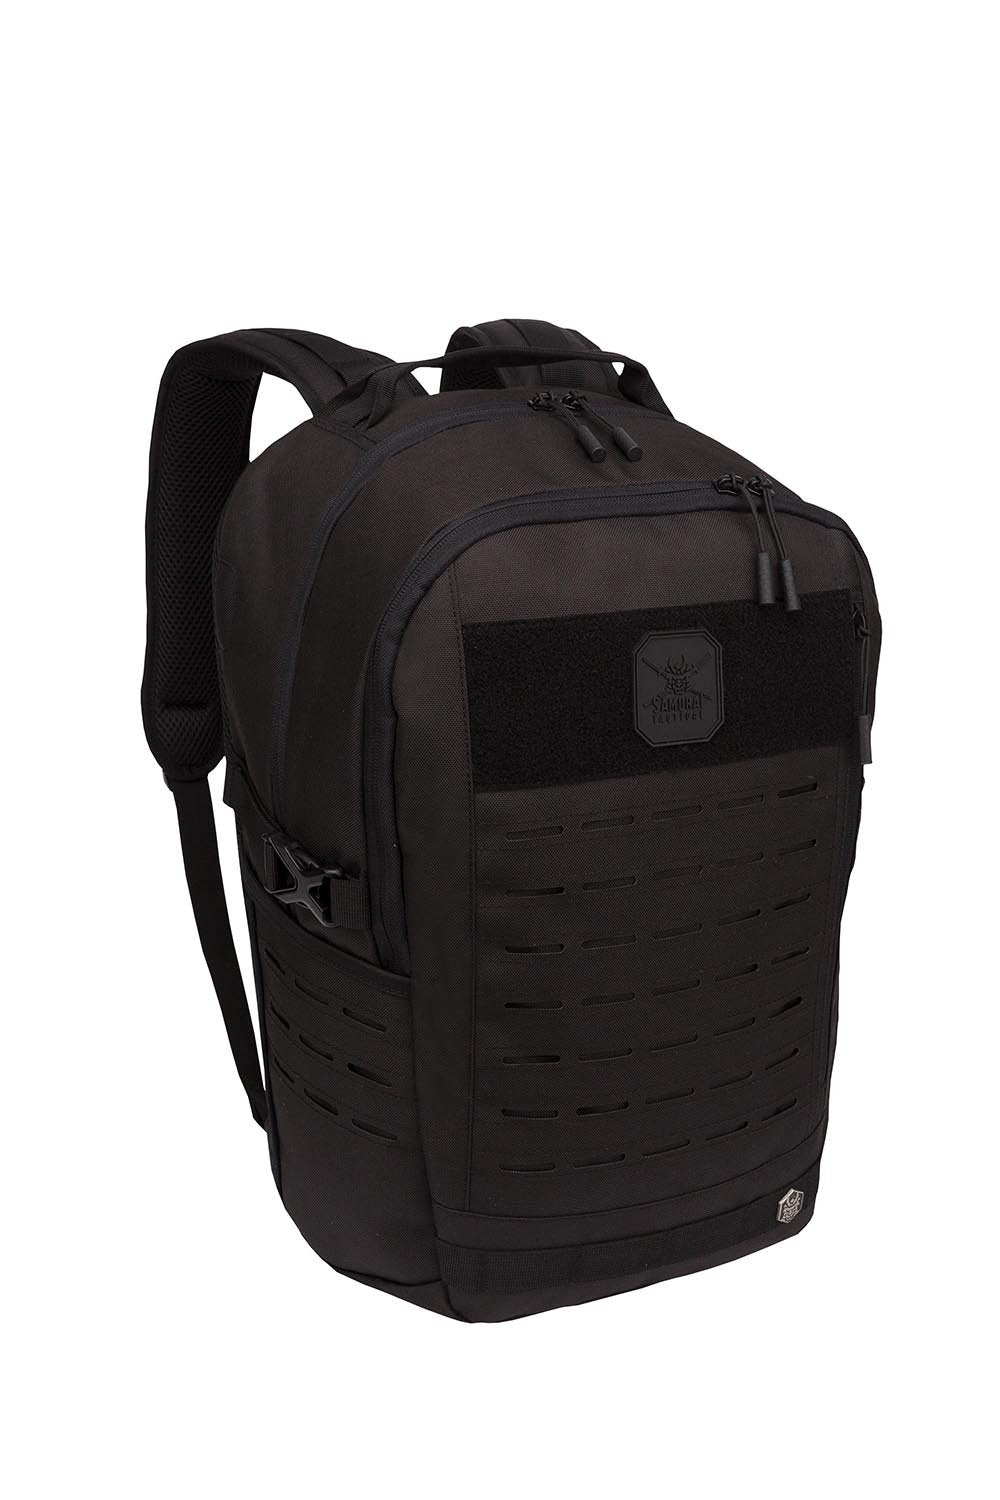 Samurai Tactical Kote Day Backpack